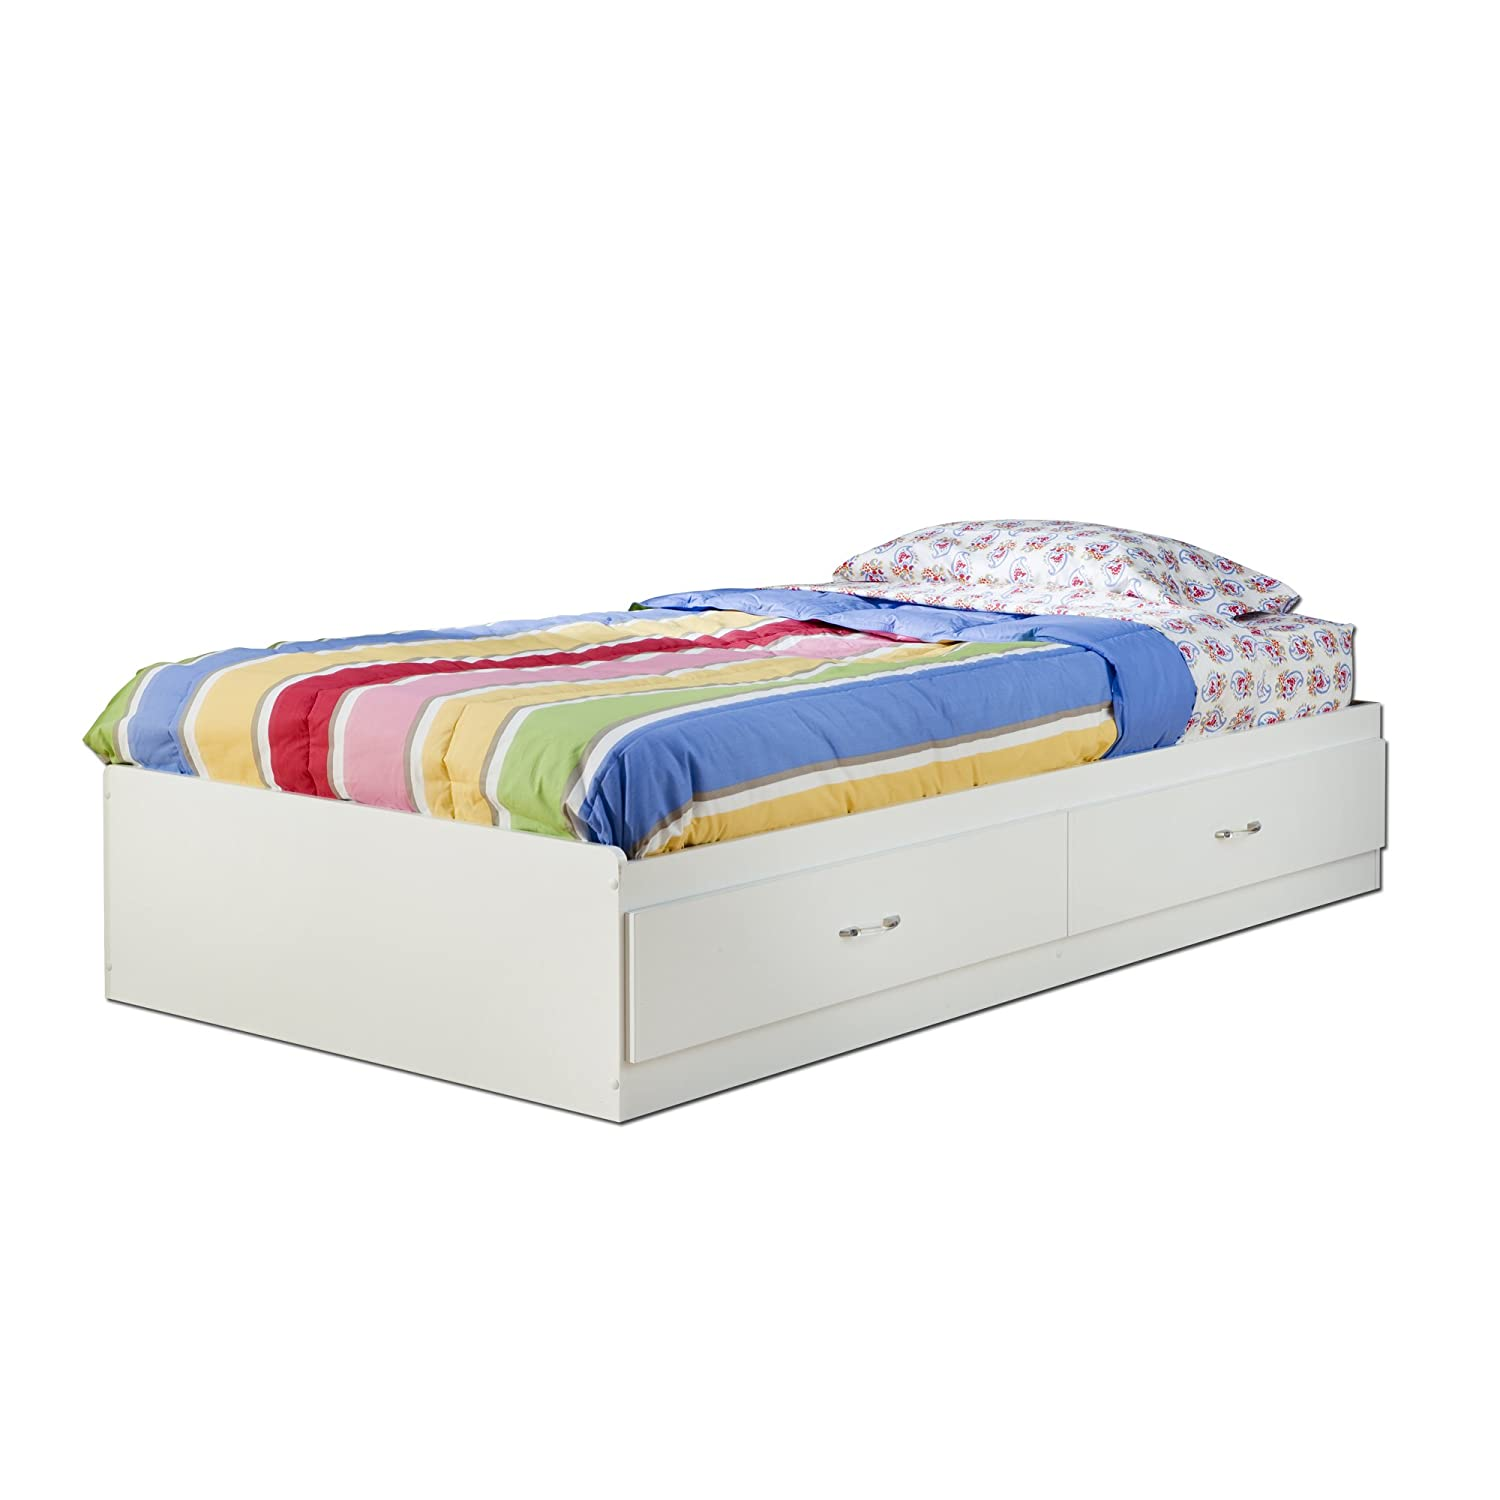 Amazon South Shore Logik Collection Twin Mates Bed Pure White